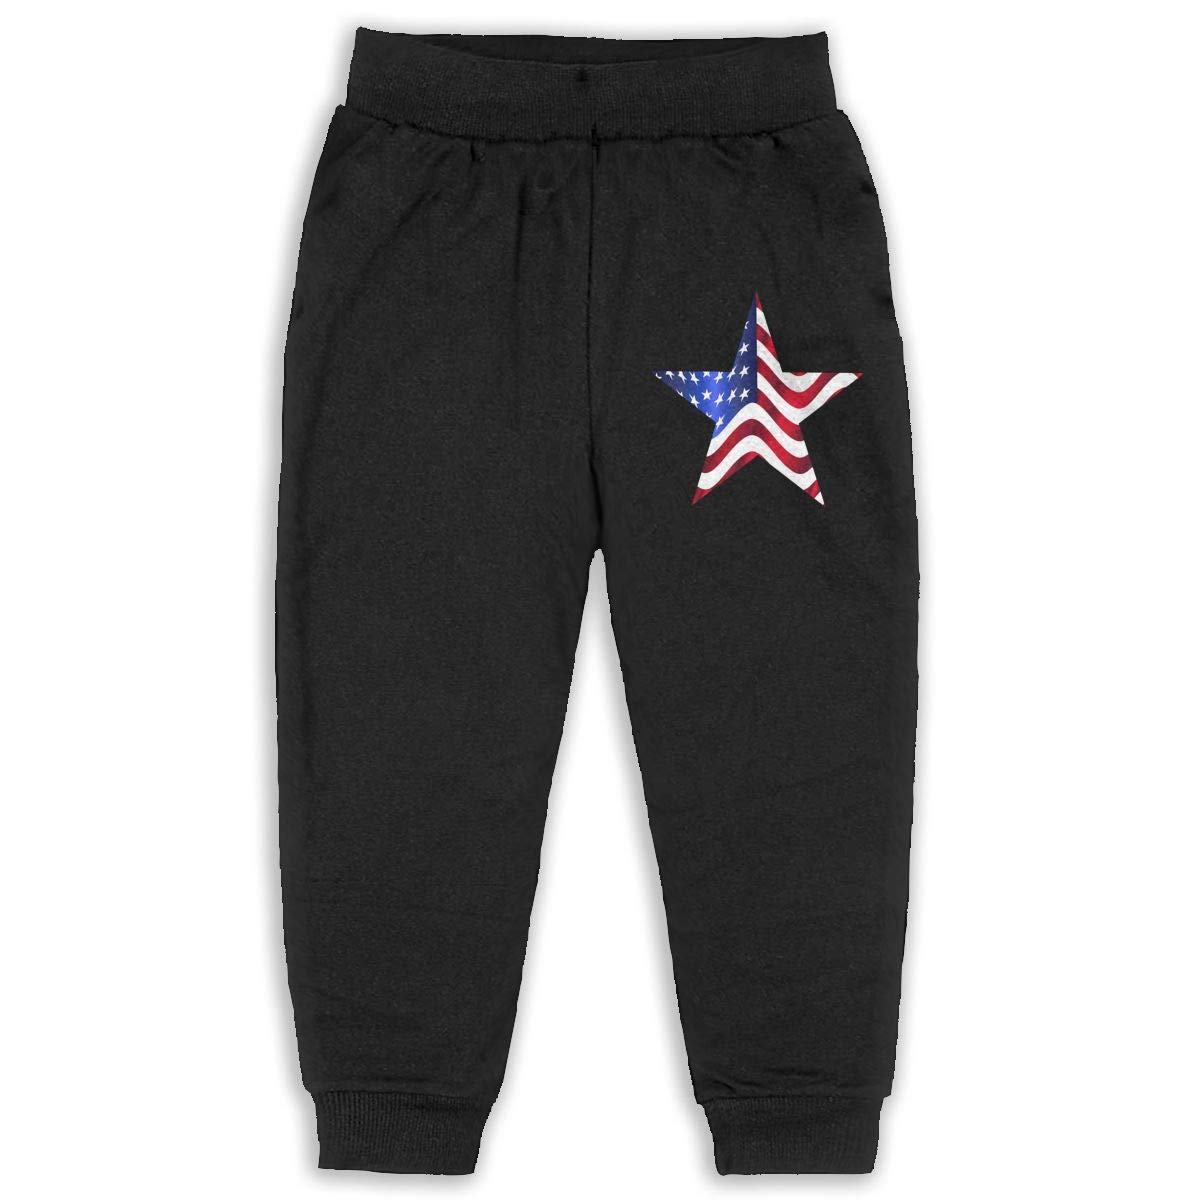 Fleece Active Joggers Elastic Pants DaXi1 USA Star Sweatpants for Boys /& Girls